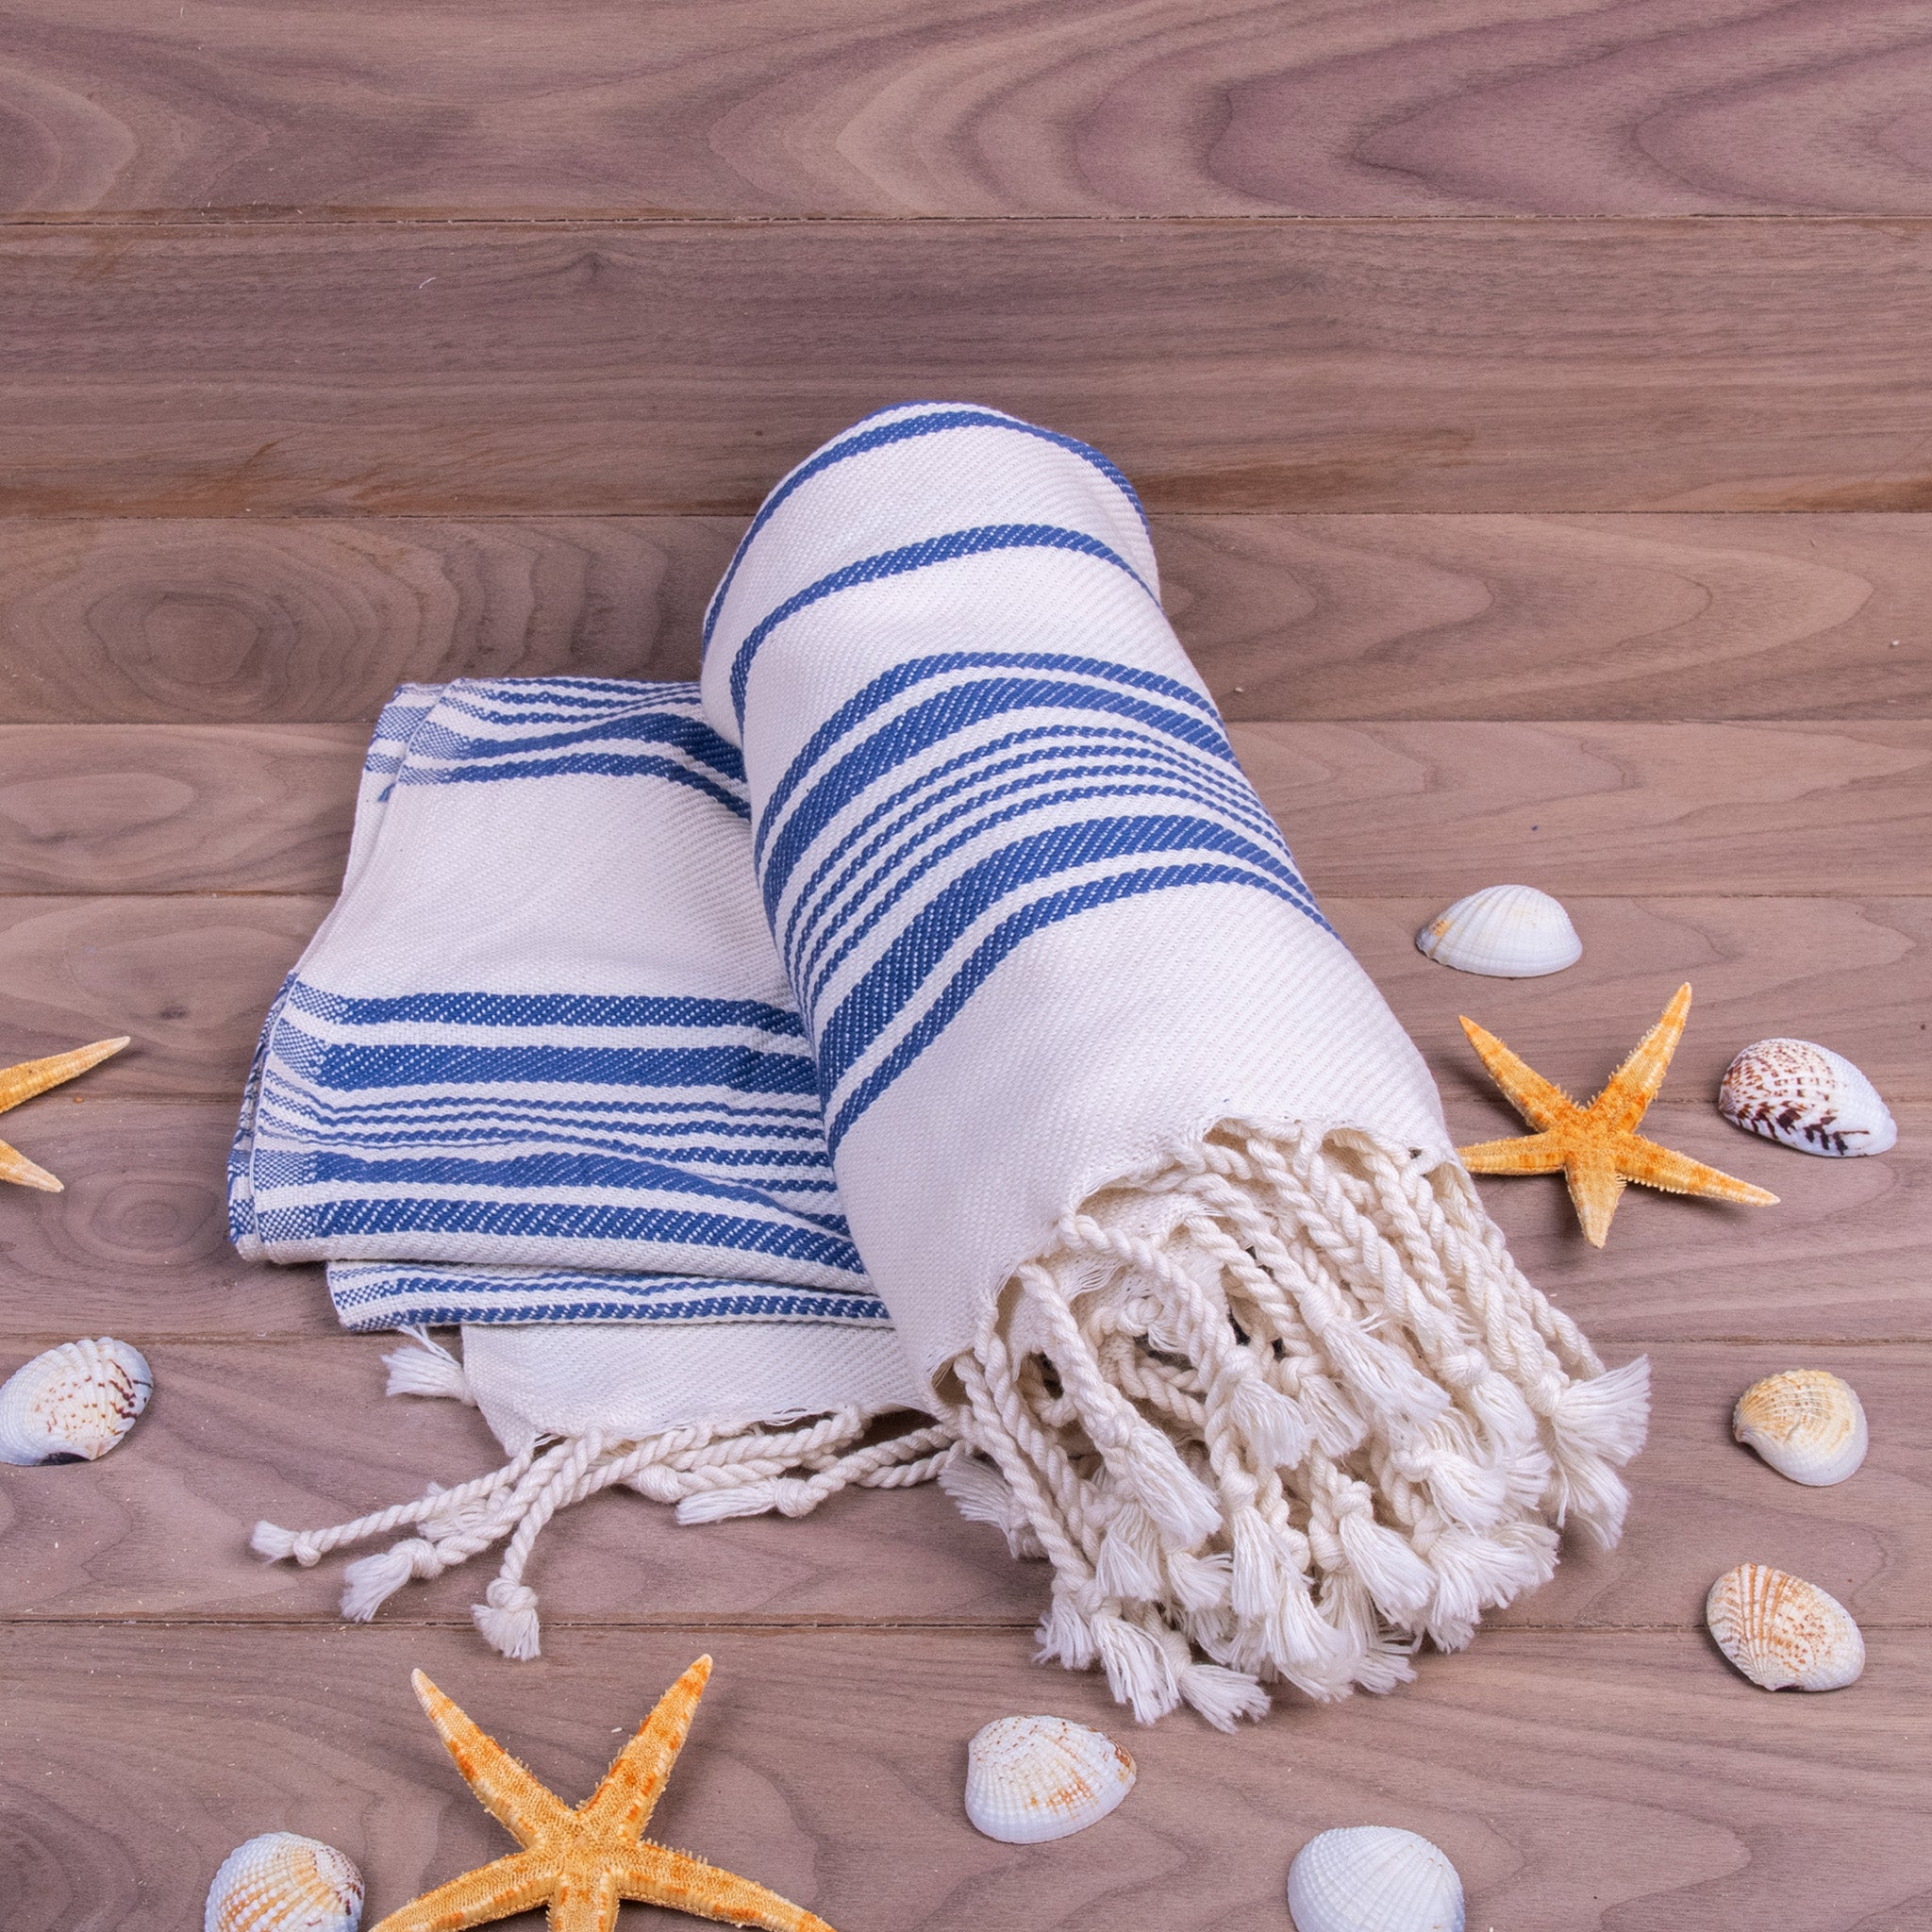 Turkish Towel, Black & White Striped Blue Peshtemal With Background